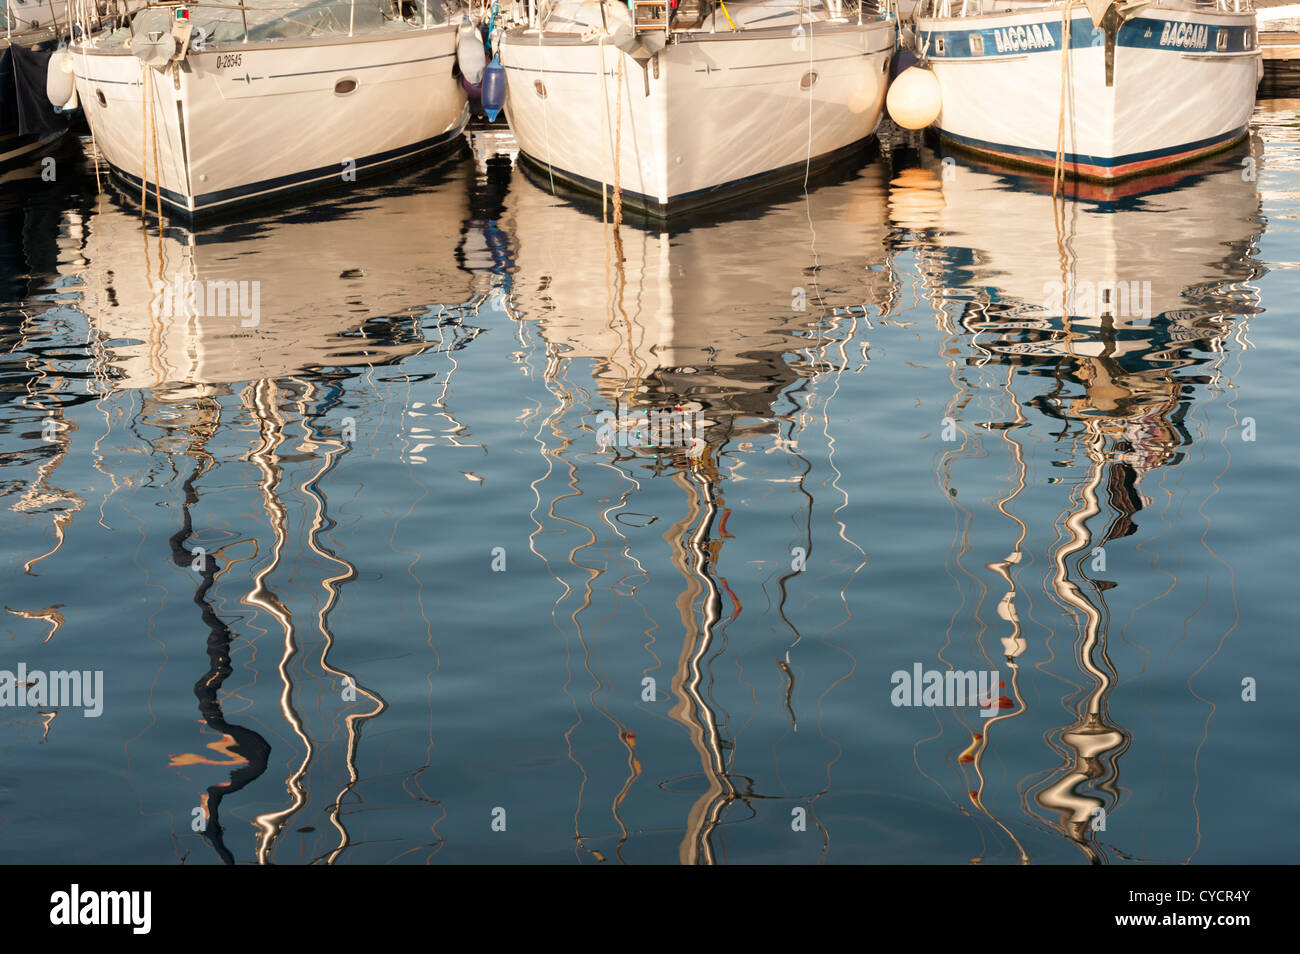 Reflections of yacht masts in the harbour water at Puerto de Mogan Gran Canaria Canary Islands Spain - Stock Image